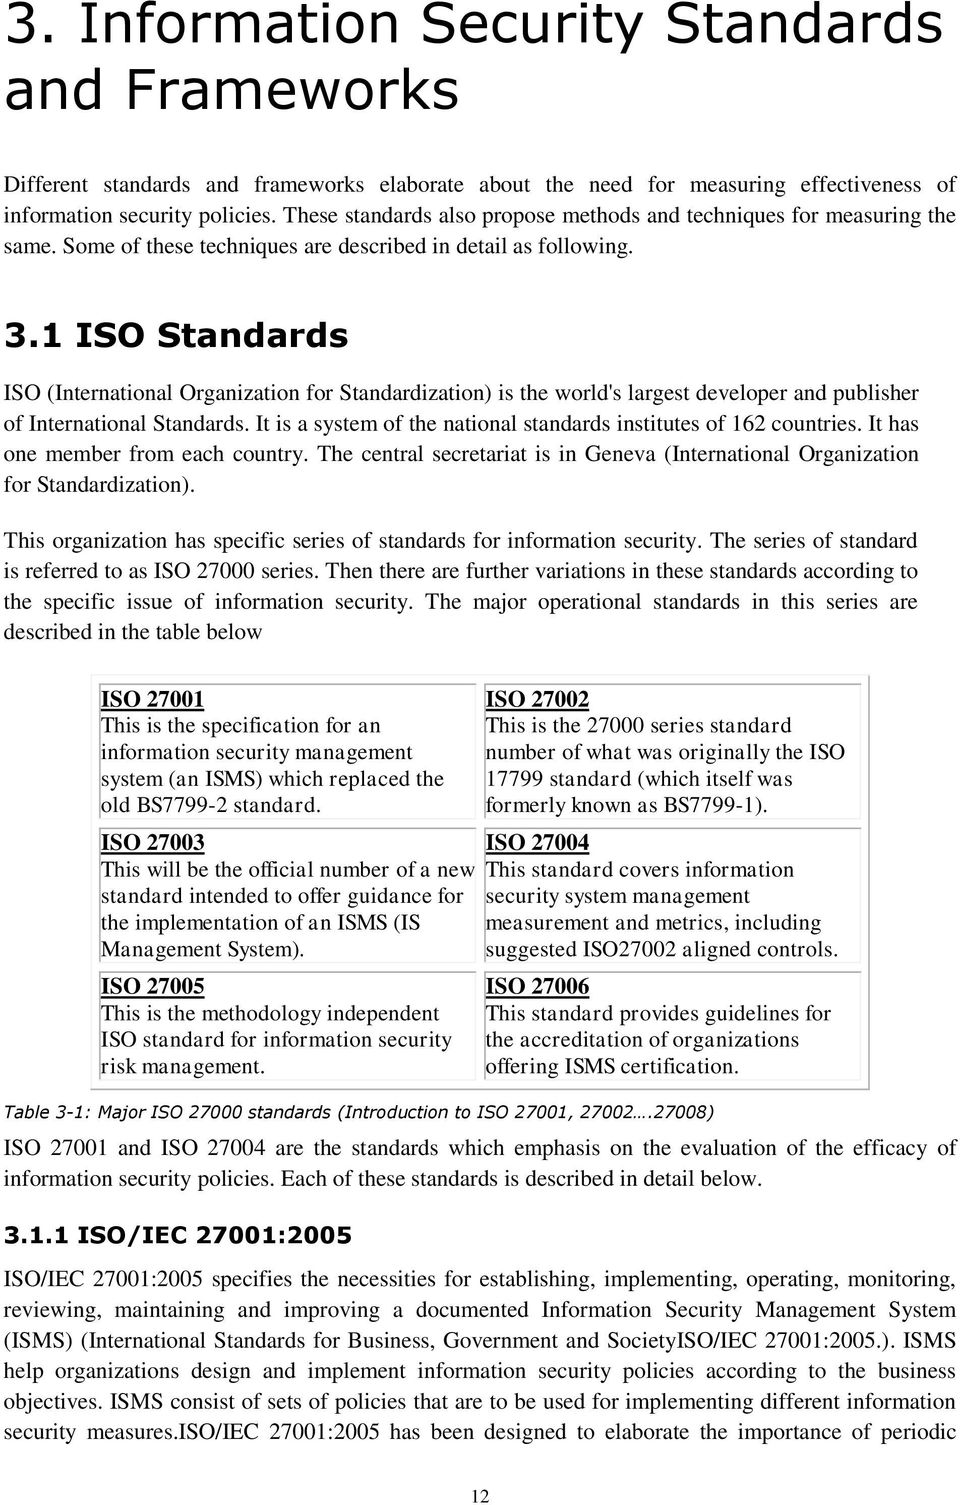 1 ISO Standards ISO (International Organization for Standardization) is the world's largest developer and publisher of International Standards.